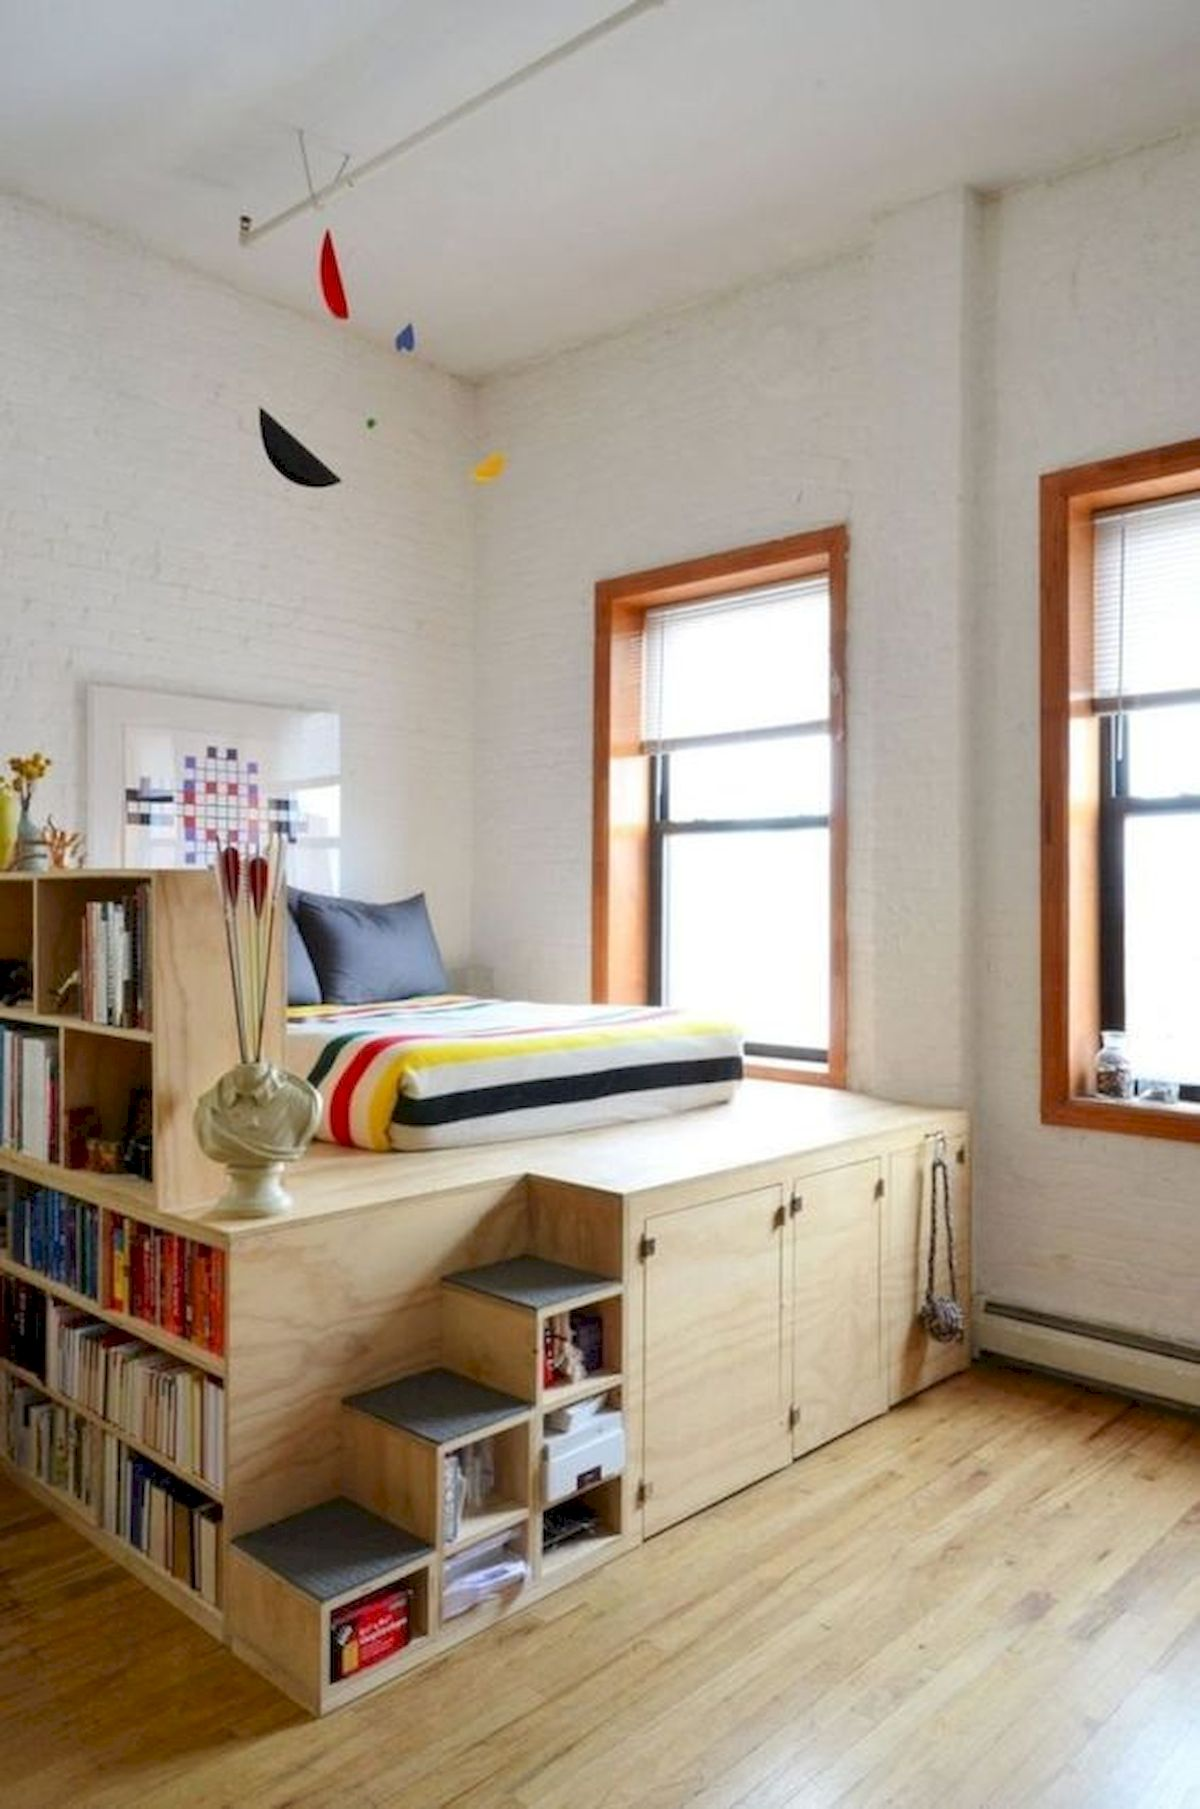 60 Easy and Brilliant DIY Storage Ideas For Small Bedroom (21)